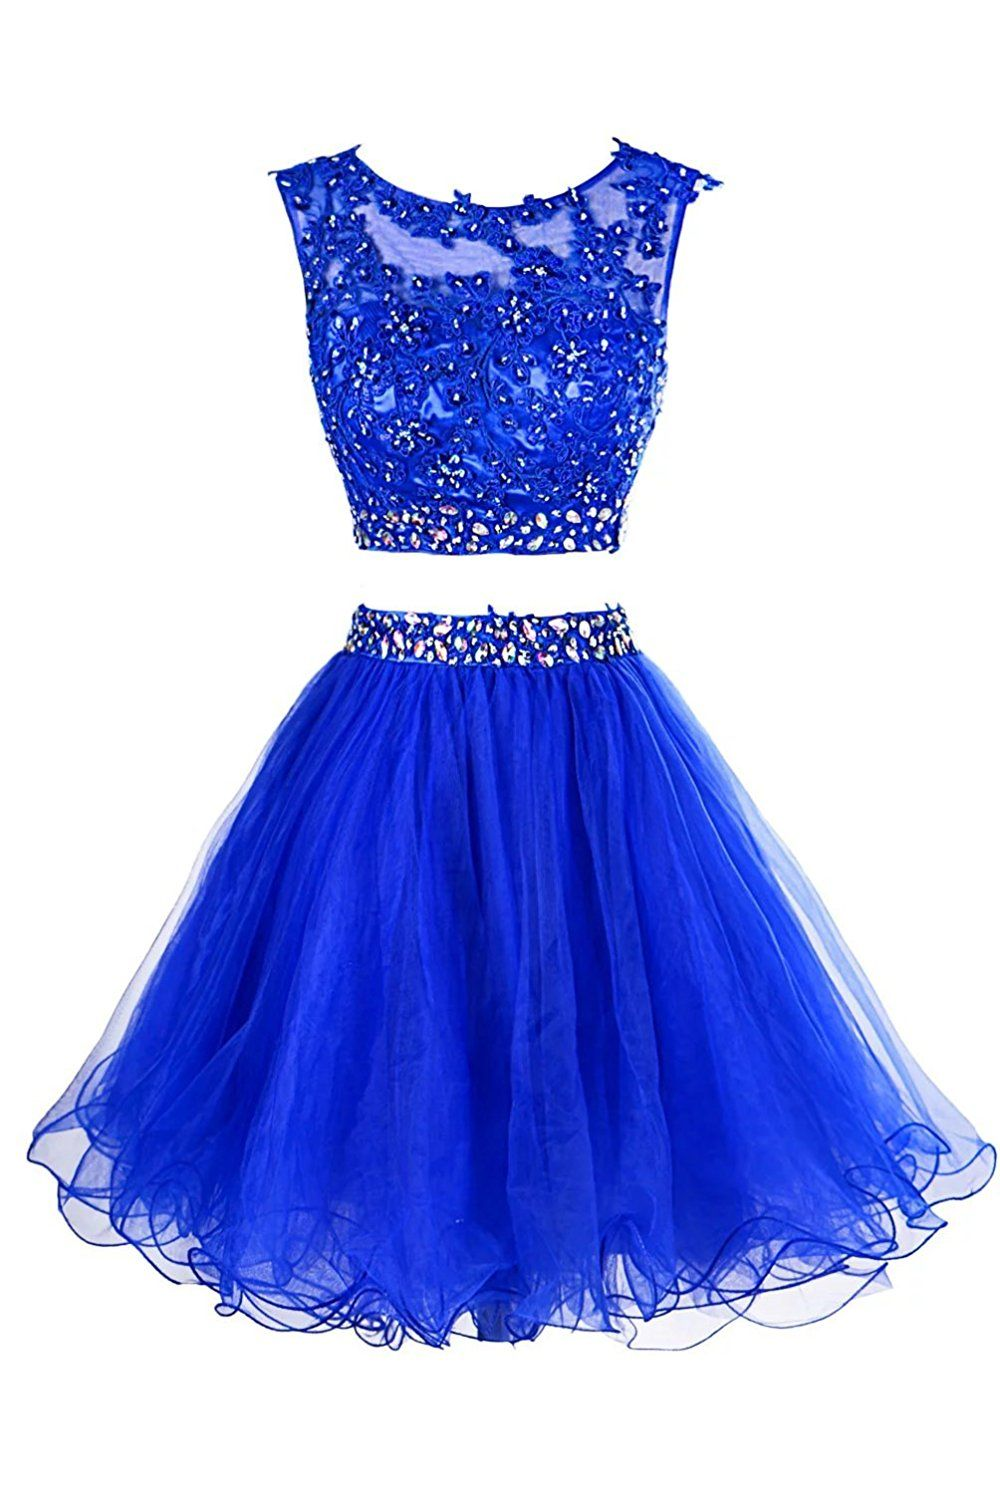 Lacelady womenus two pieces beading tulle applique short homecoming